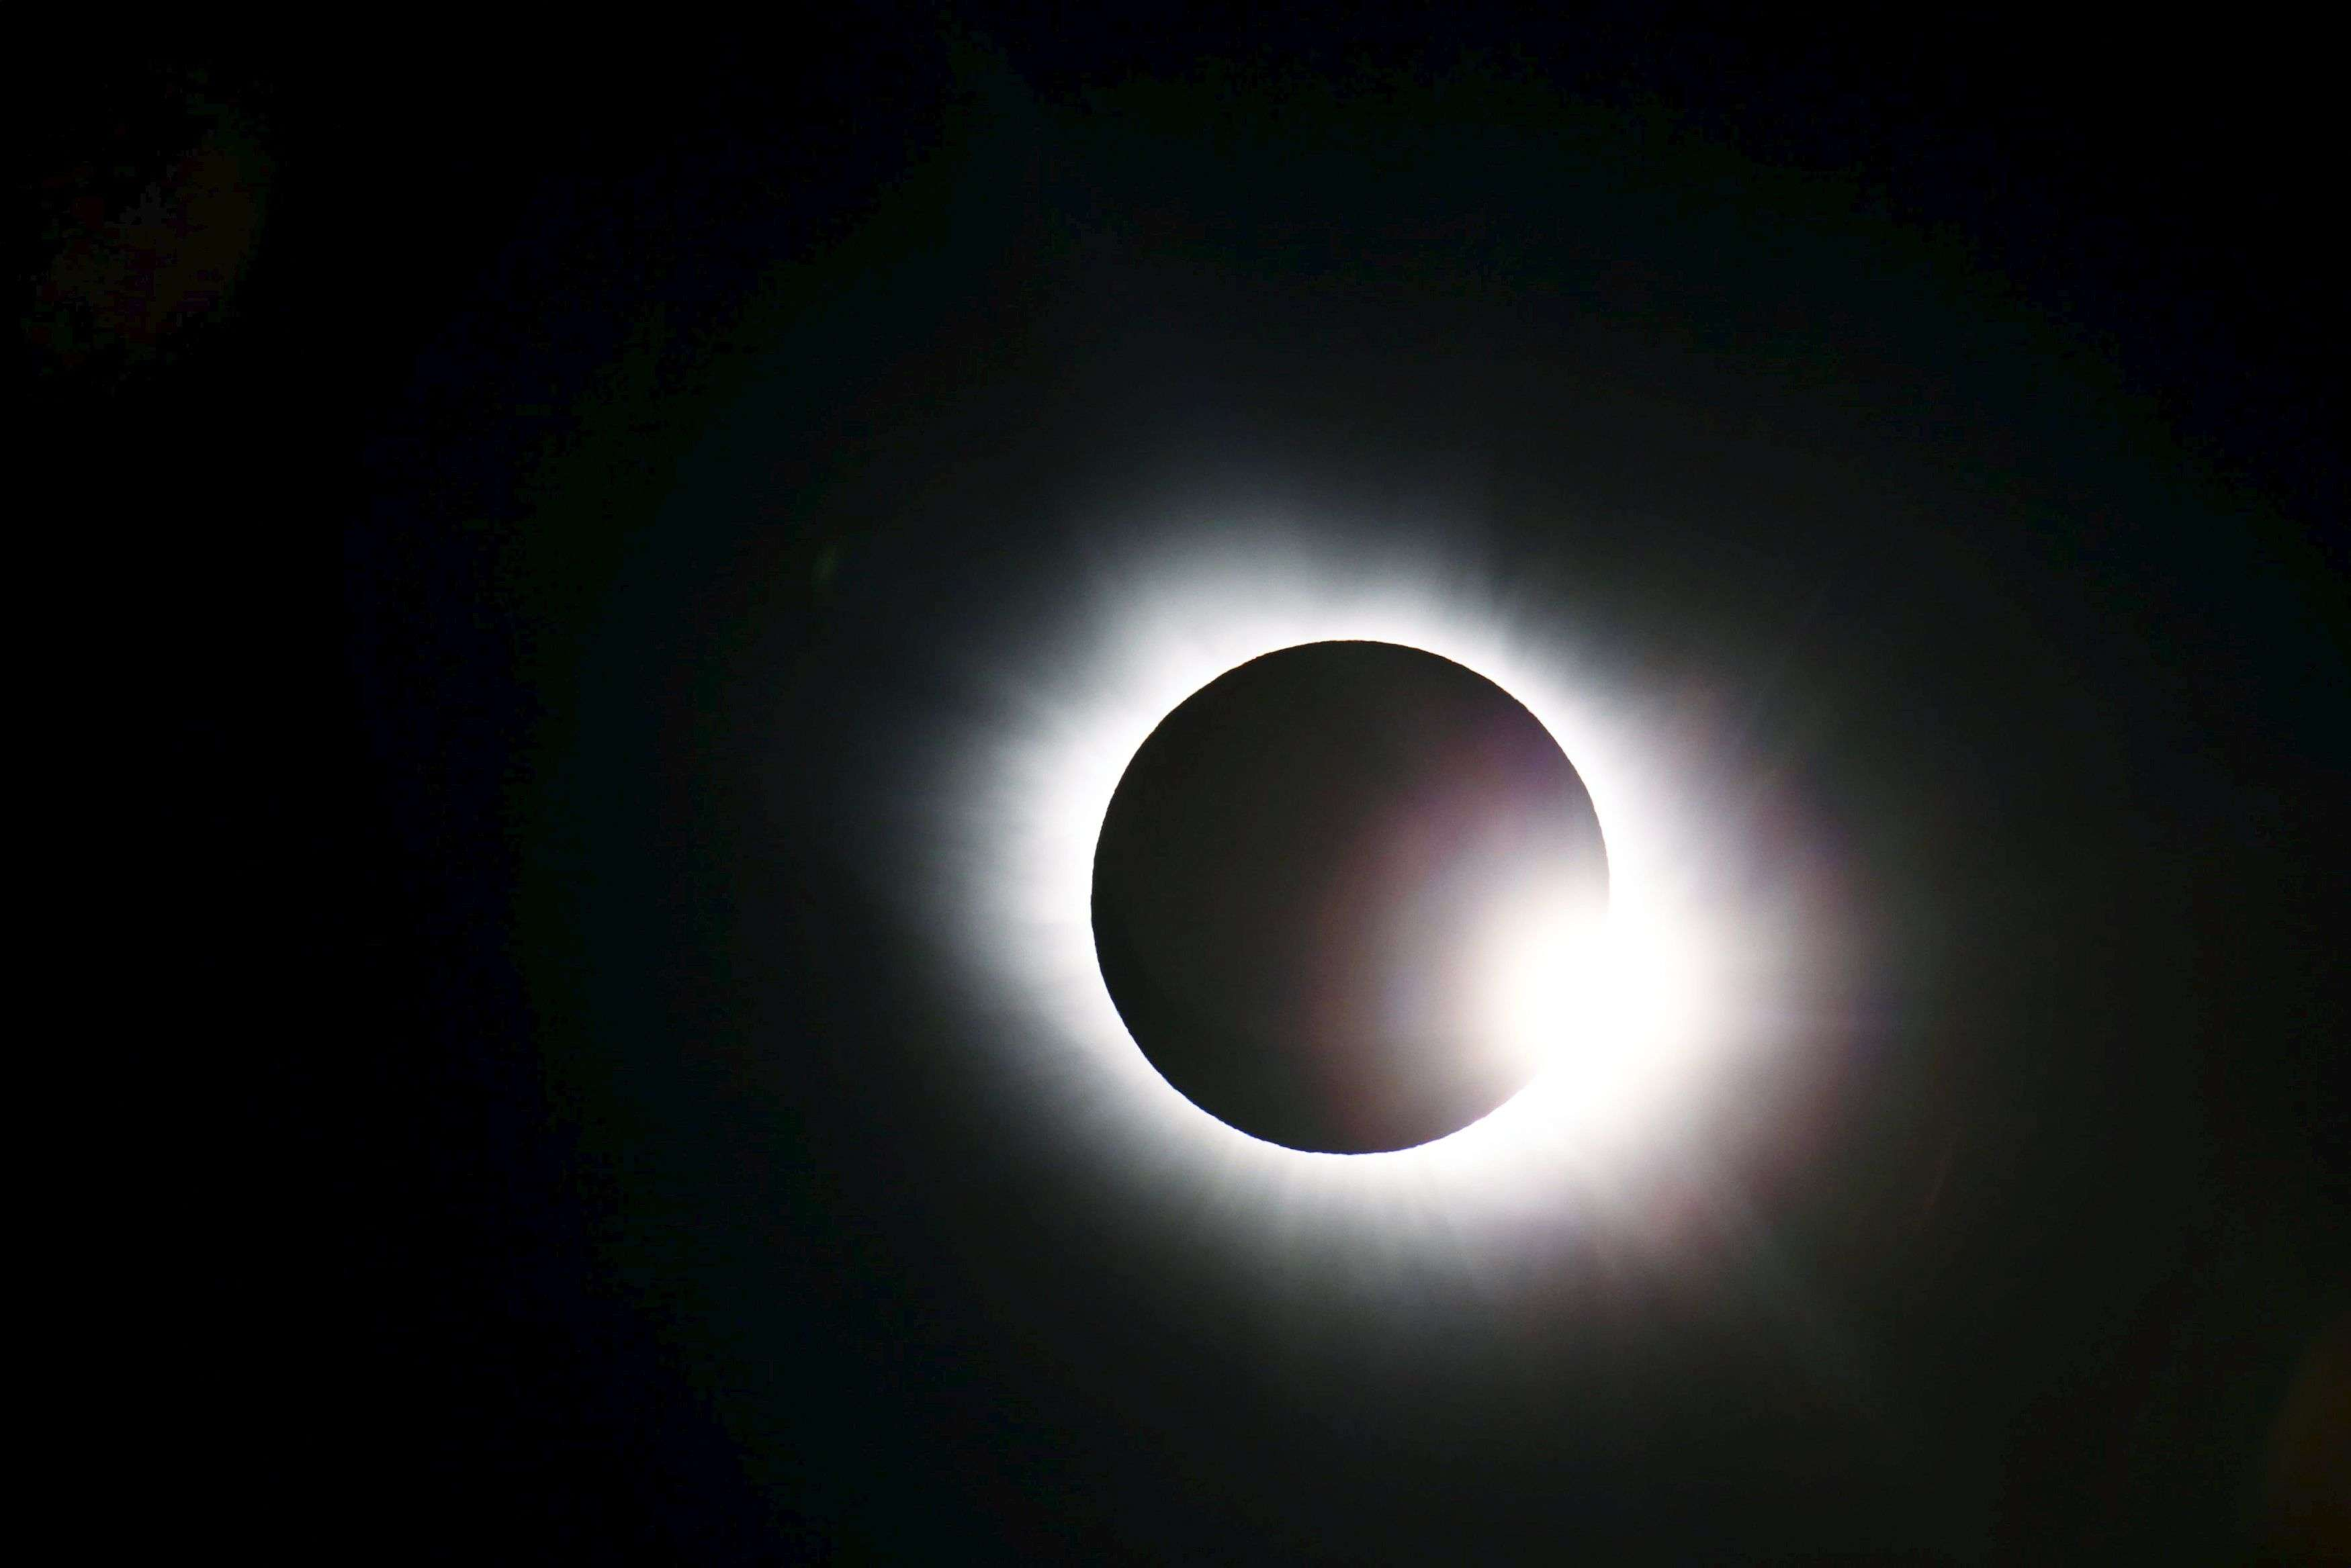 A partial eclipse was visible on Friday, the first day of northern spring, across parts of Africa, Europe and Asia. The total eclipse of the sun was only visible in the Faroe Islands and the Norwegian archipelago of Svalbard in the Arctic Ocean. (REUTERS/Haakon Mosvold Larsen)